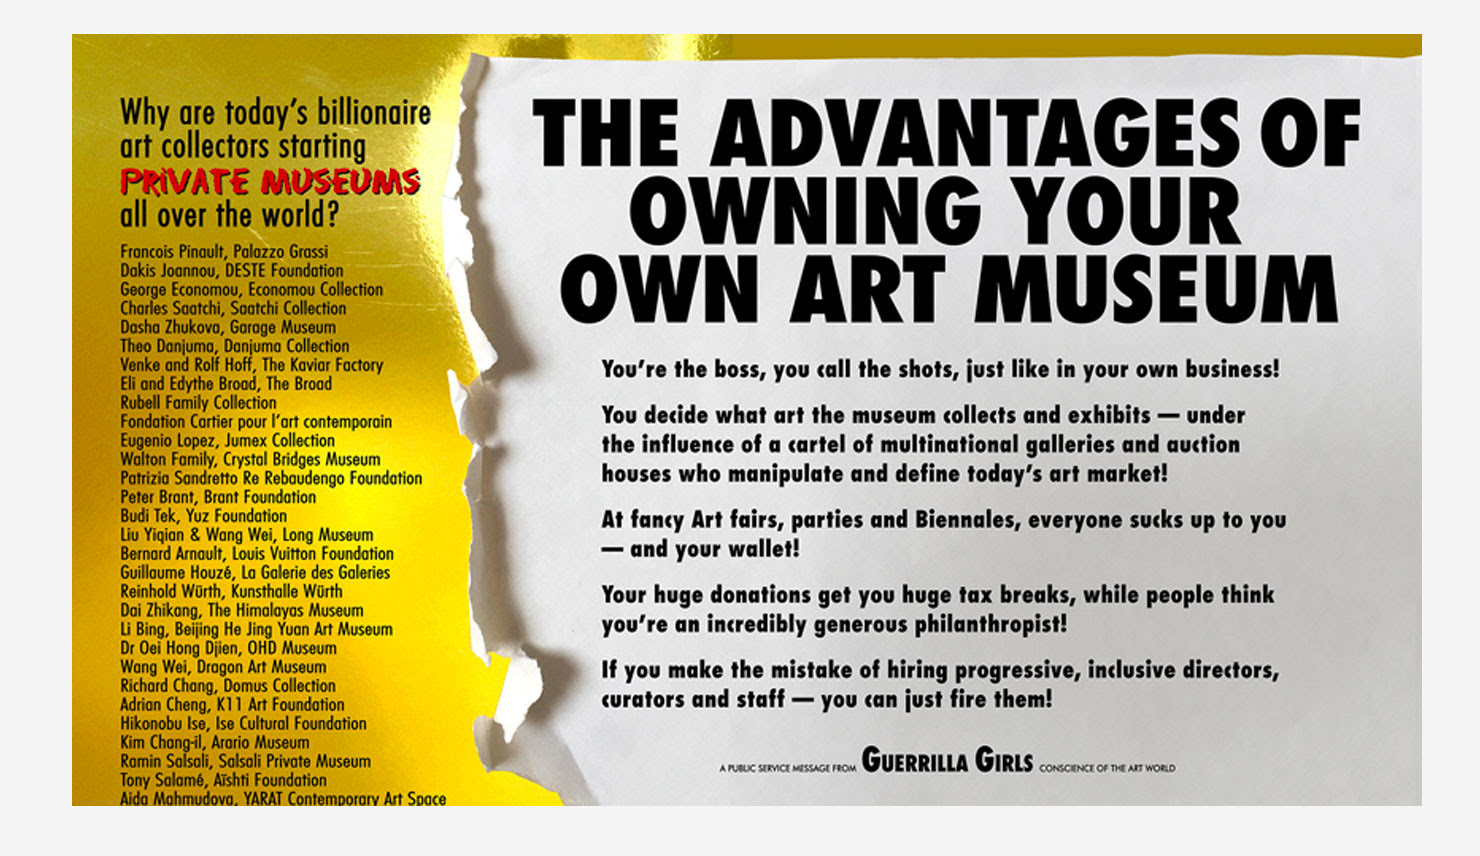 """List of billionaire art collectors that have started their own museums. """"The Advantages of Owning Your Own Art Museum"""" """"You're the boss, you call the shots, just like in your own business! you decide what art the museum collects and exhibits —under the influence of a cartel of multinational galleries and auction houses who manipulate and define today's art market! At fancy Art fairs, parties and Biennales, everyone sucks up to you —and your wallet! Your huge donations get you huge tax breaks, while people think you're an incredibly generous philanthropist! If you make the mistake of hiring progressive, inclusive directors, curators and staff —you can just fire them!"""